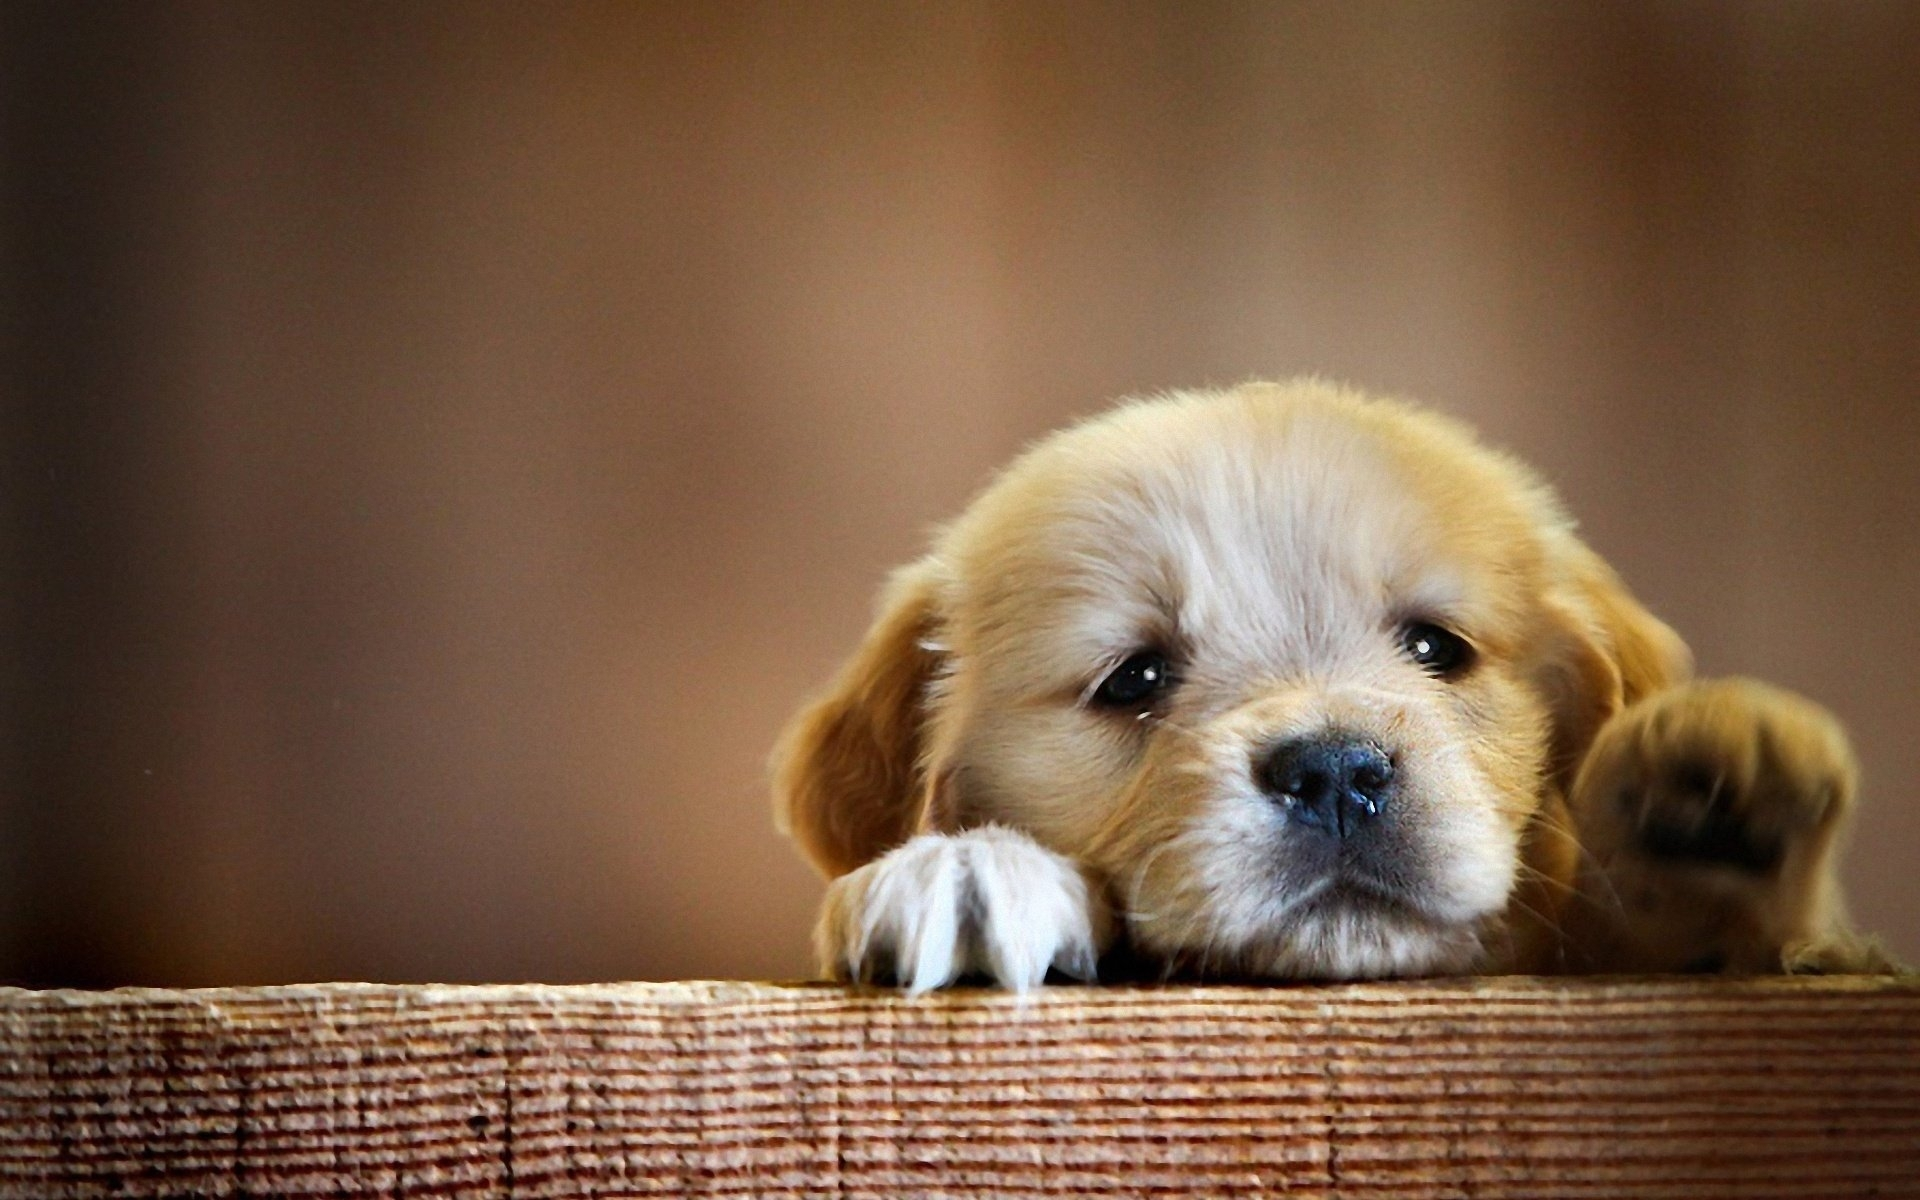 551 puppy hd wallpapers | background images - wallpaper abyss